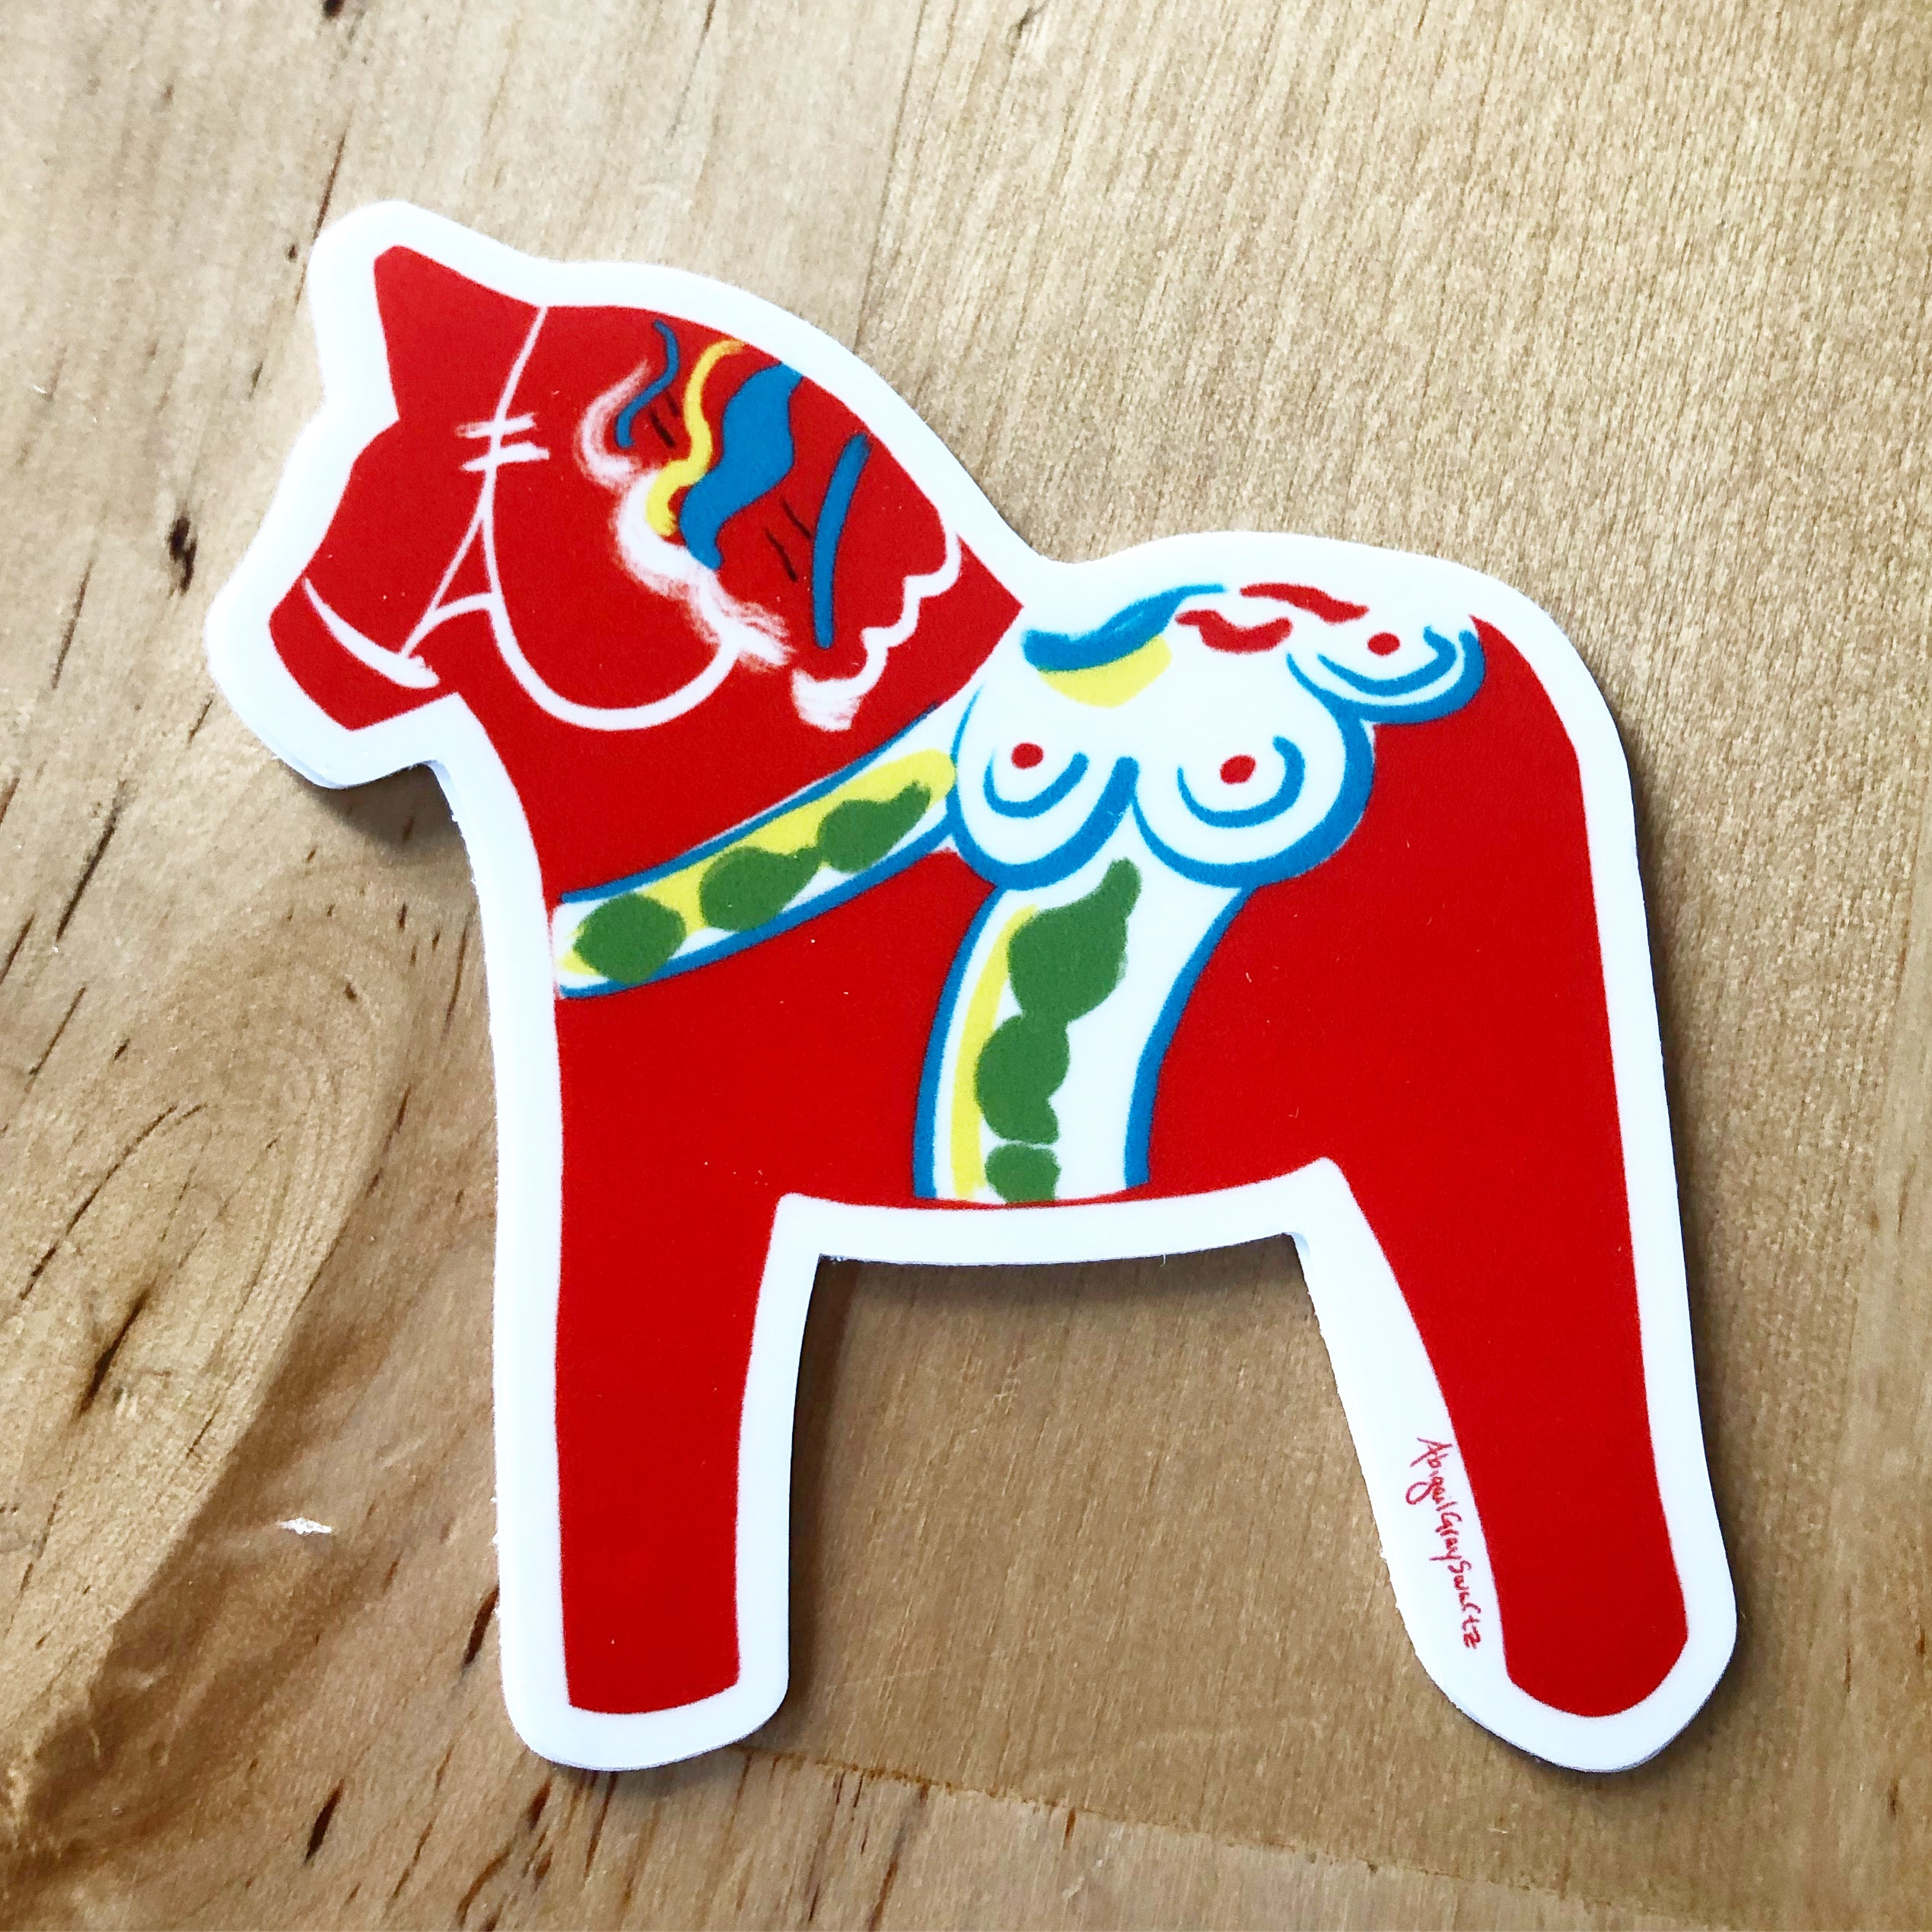 Dala horse, Swedish red horse STICKER - Stickers & Magnets